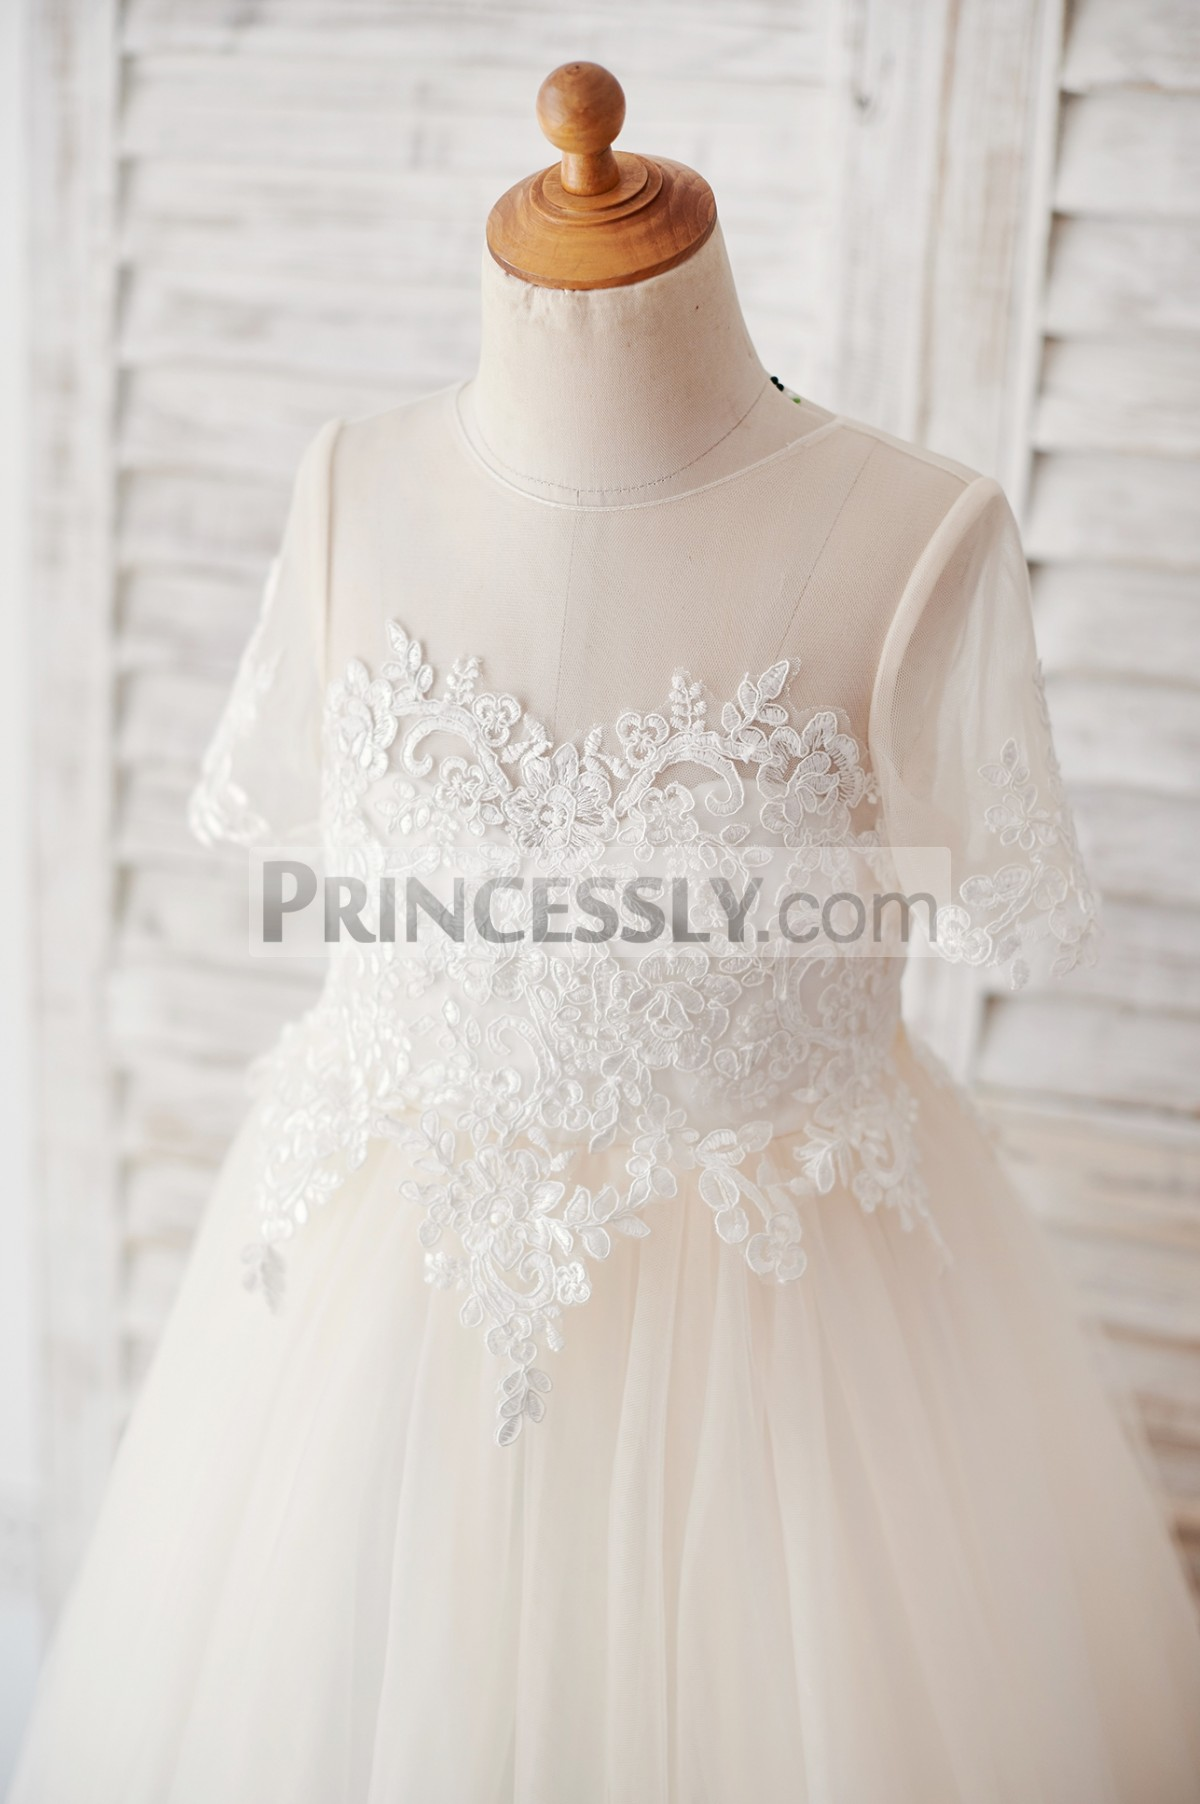 Sheer neck, short sleeves bodice with ivory lace appliques